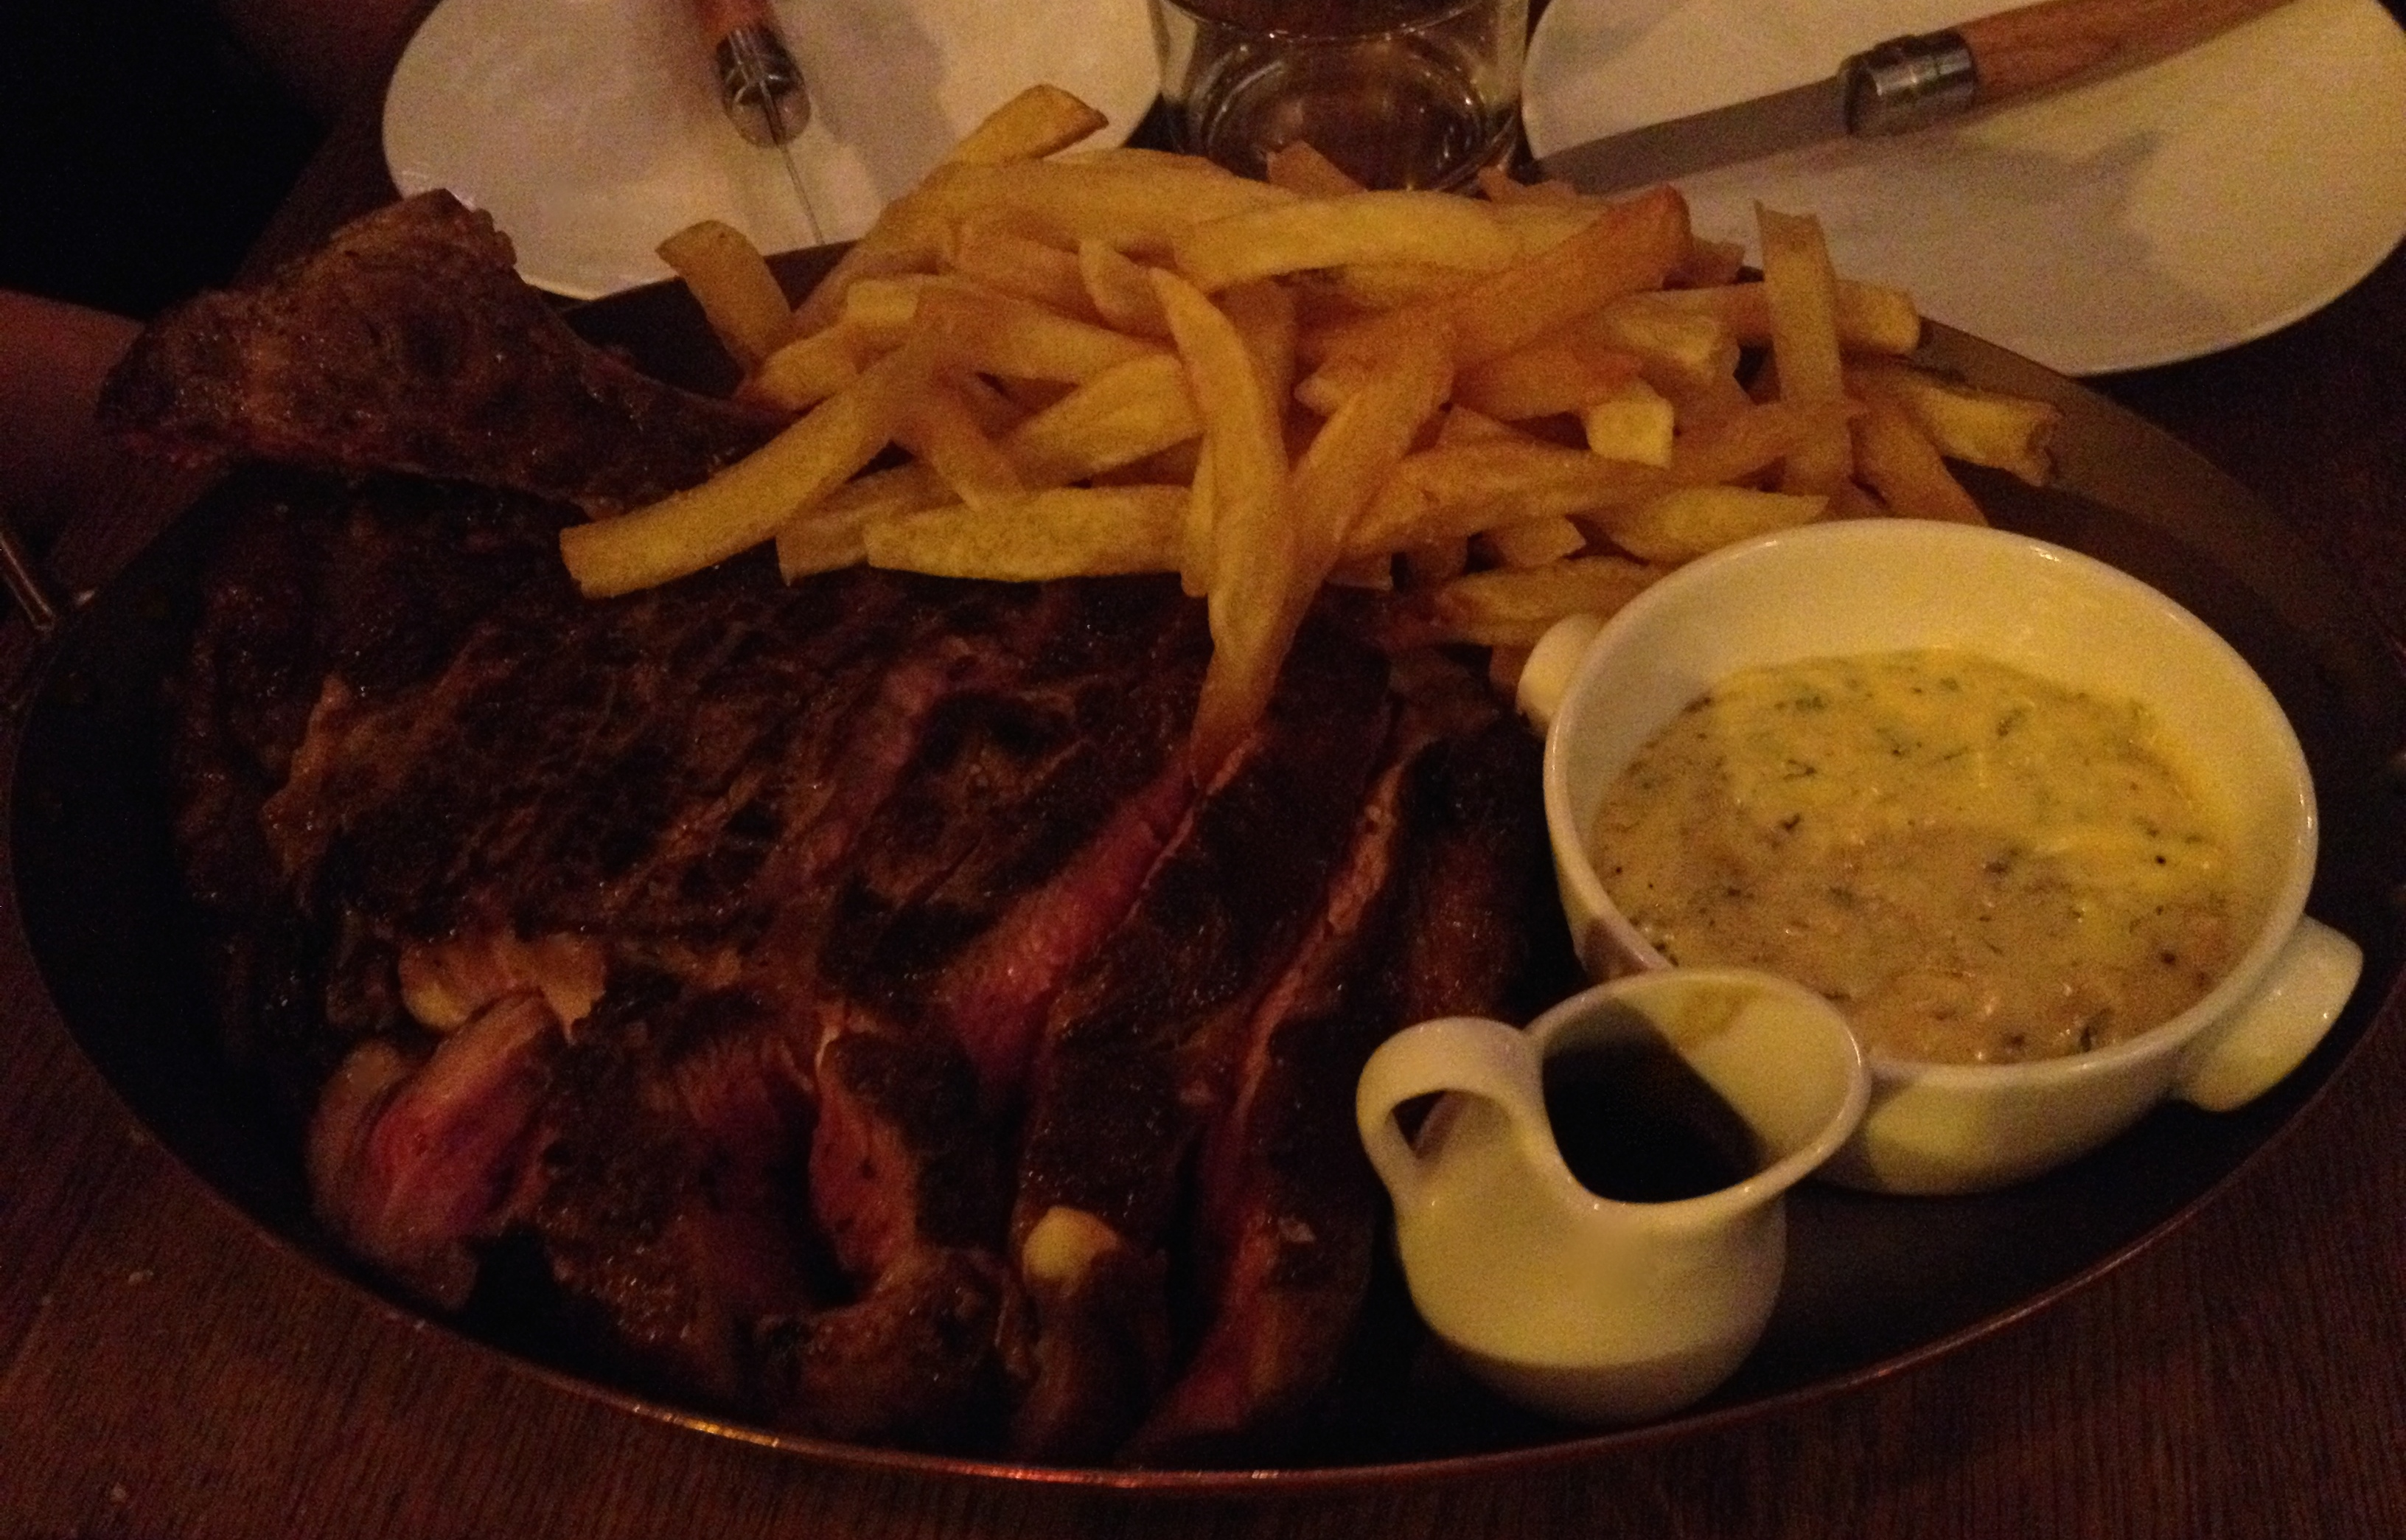 Beef steak with french fries and homemade Bearnaise sauce